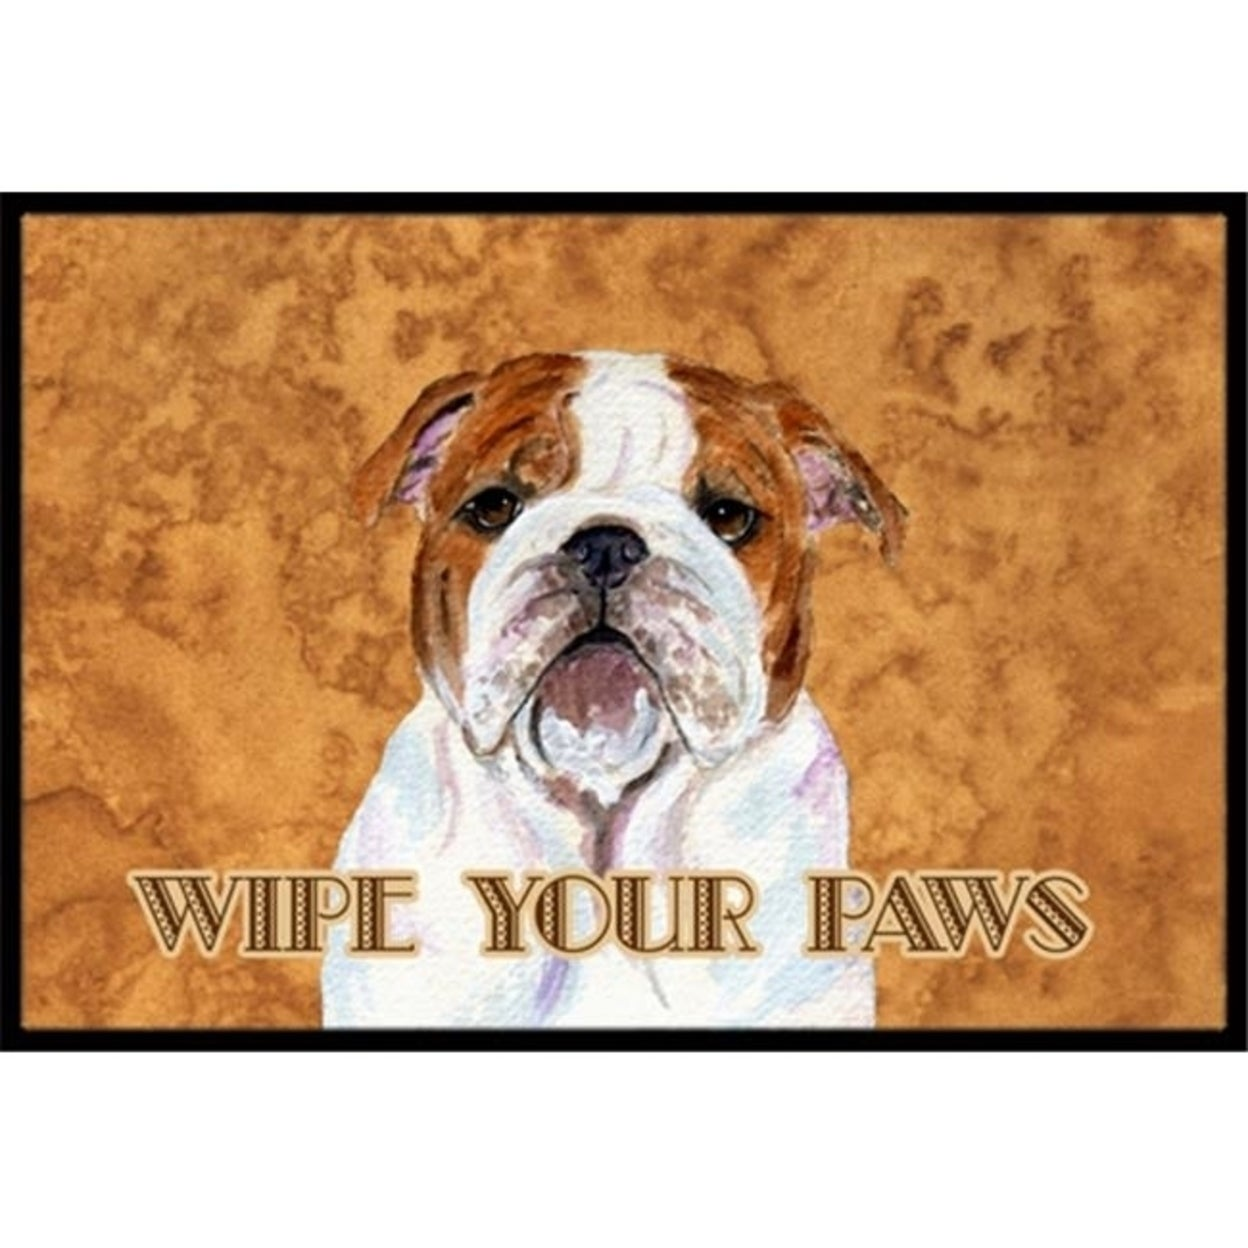 Carolines Treasures Ss4896mat 18 X 27 In Bulldog English Wipe Your Paws Indoor Or Outdoor Mat On Sale Overstock 27966179